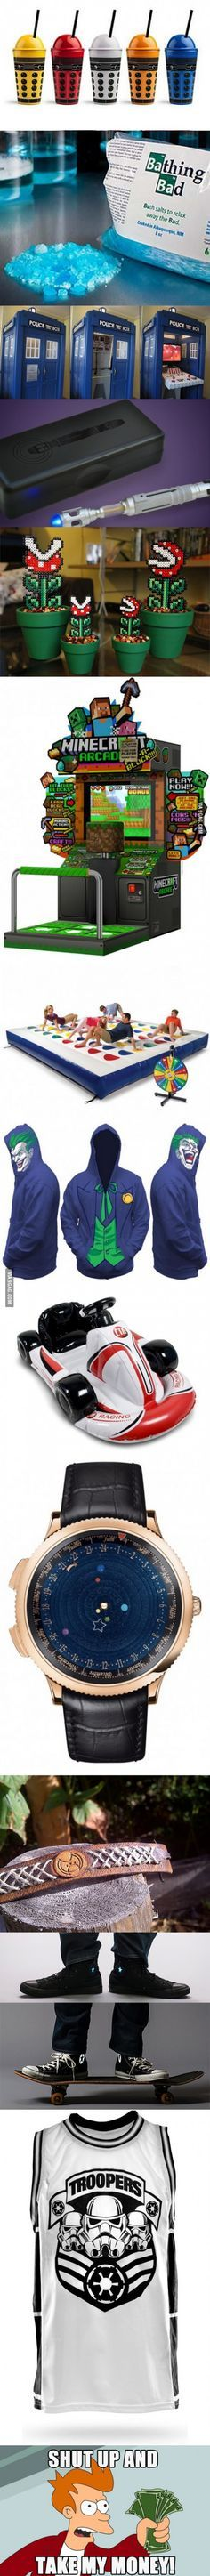 Shut up... And take my money!